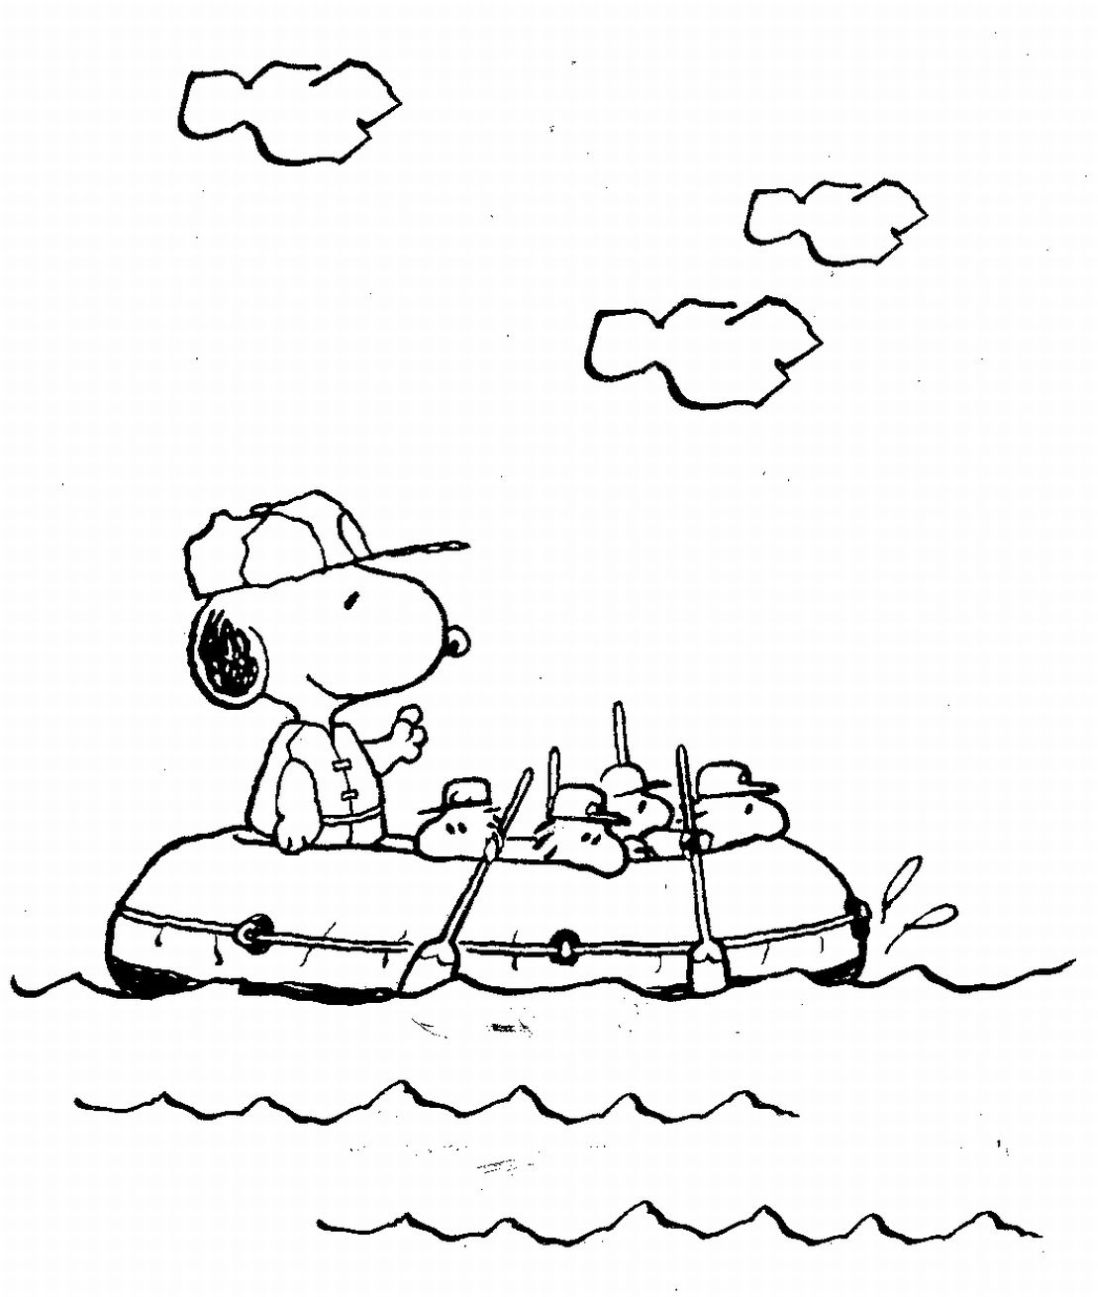 Free Coloring Pages Of Snoopy Snoopy Printable Coloring Pages